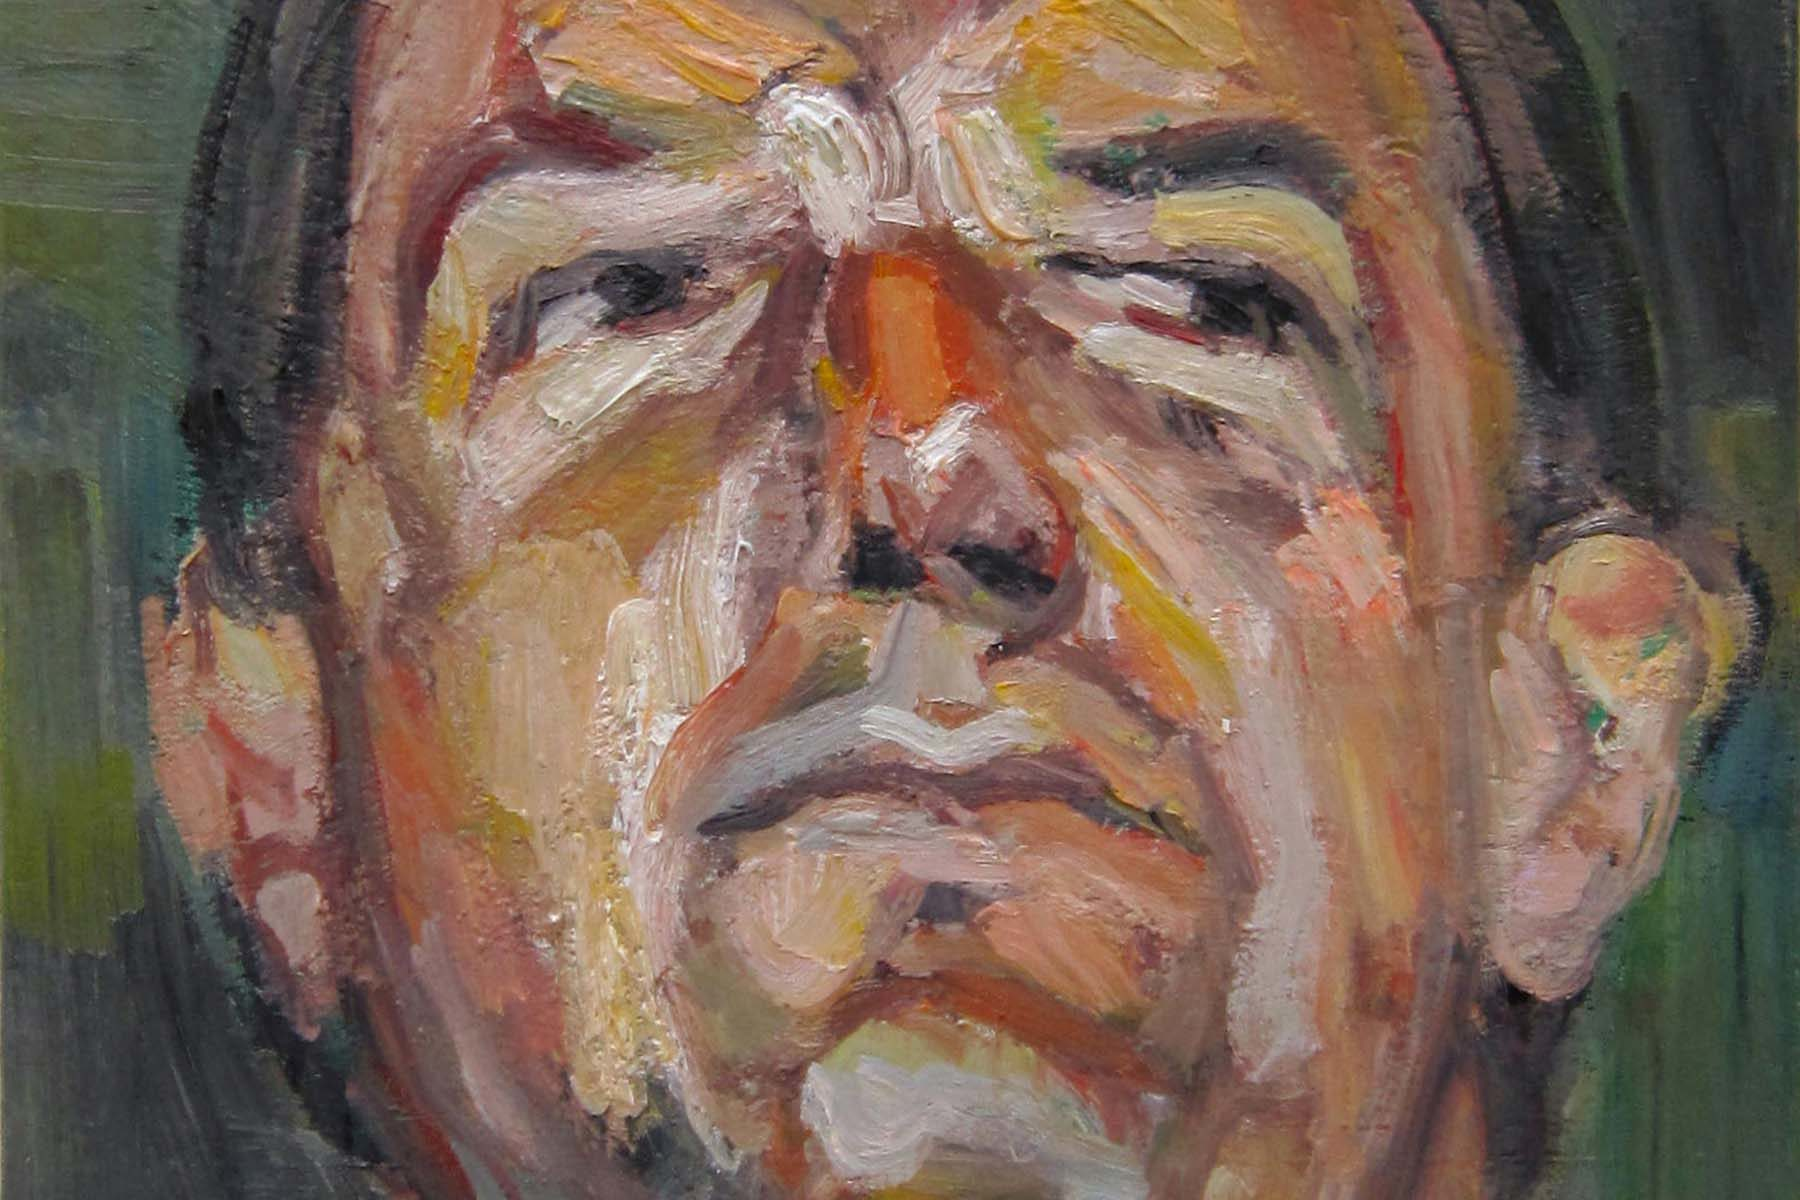 Aleksander Veliscek. 80,84 m (P. Kozmus), 2012, oil on canvas, 50 x 70 cm